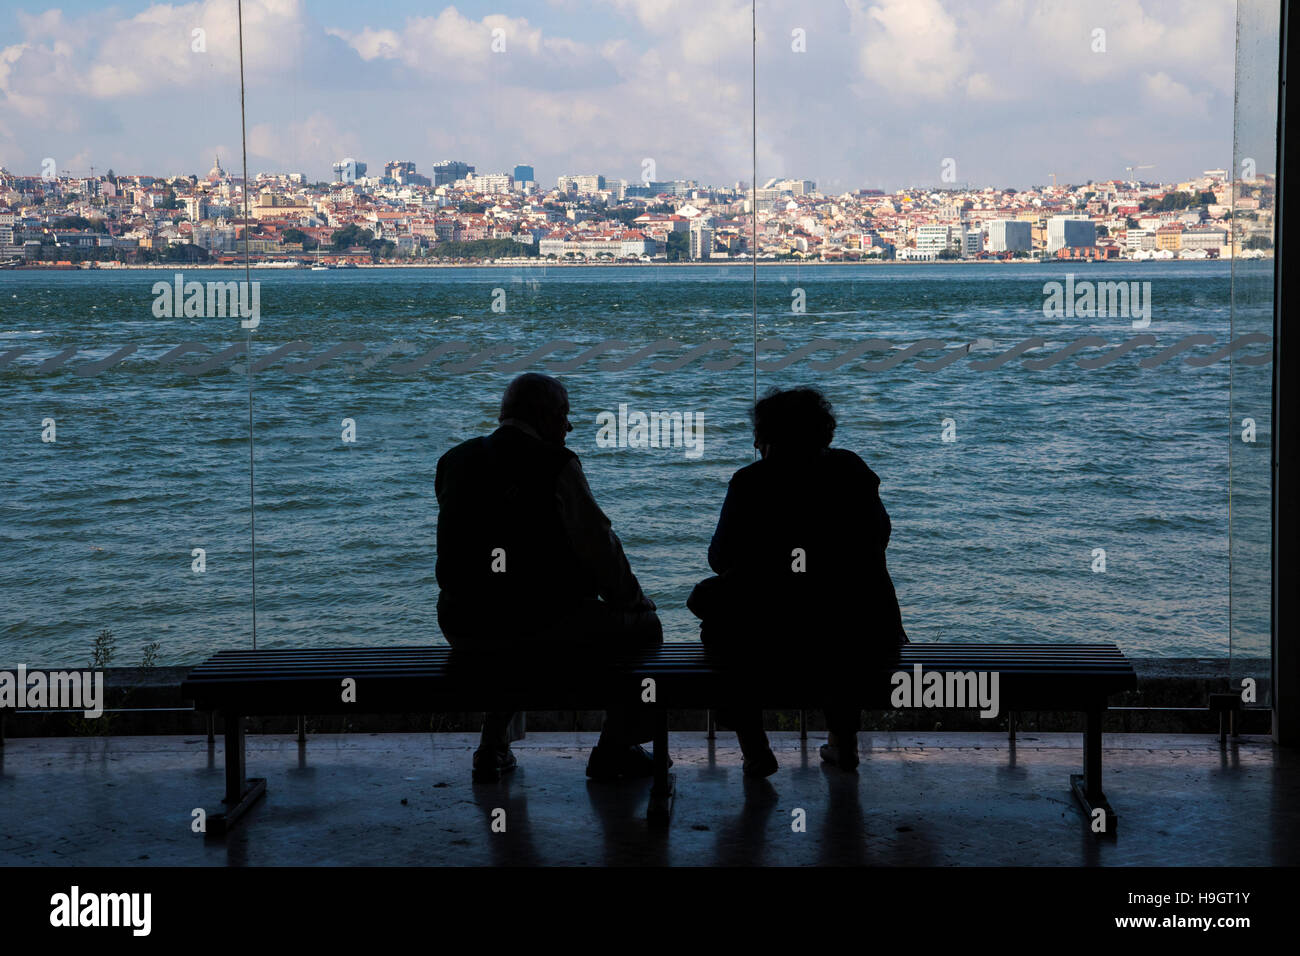 Lisbon. Pensioner couple waiting at Almada ferry terminal  on the south side of the river making Lisbon easily accessible - Stock Image